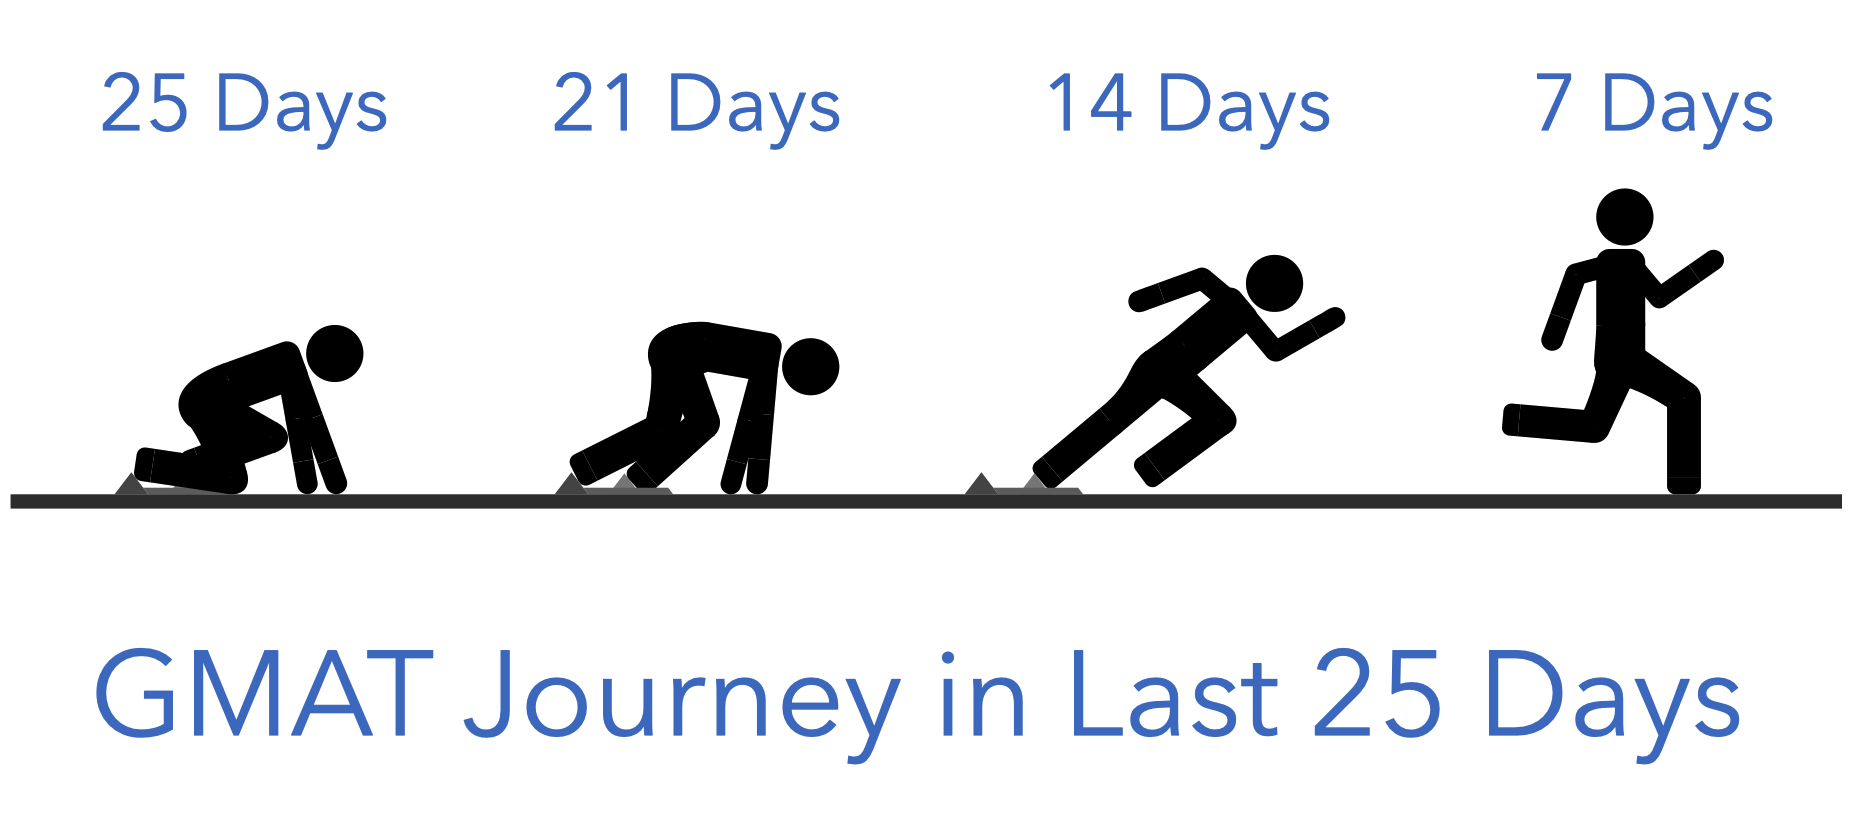 GMAT Journey - In the last 25 days